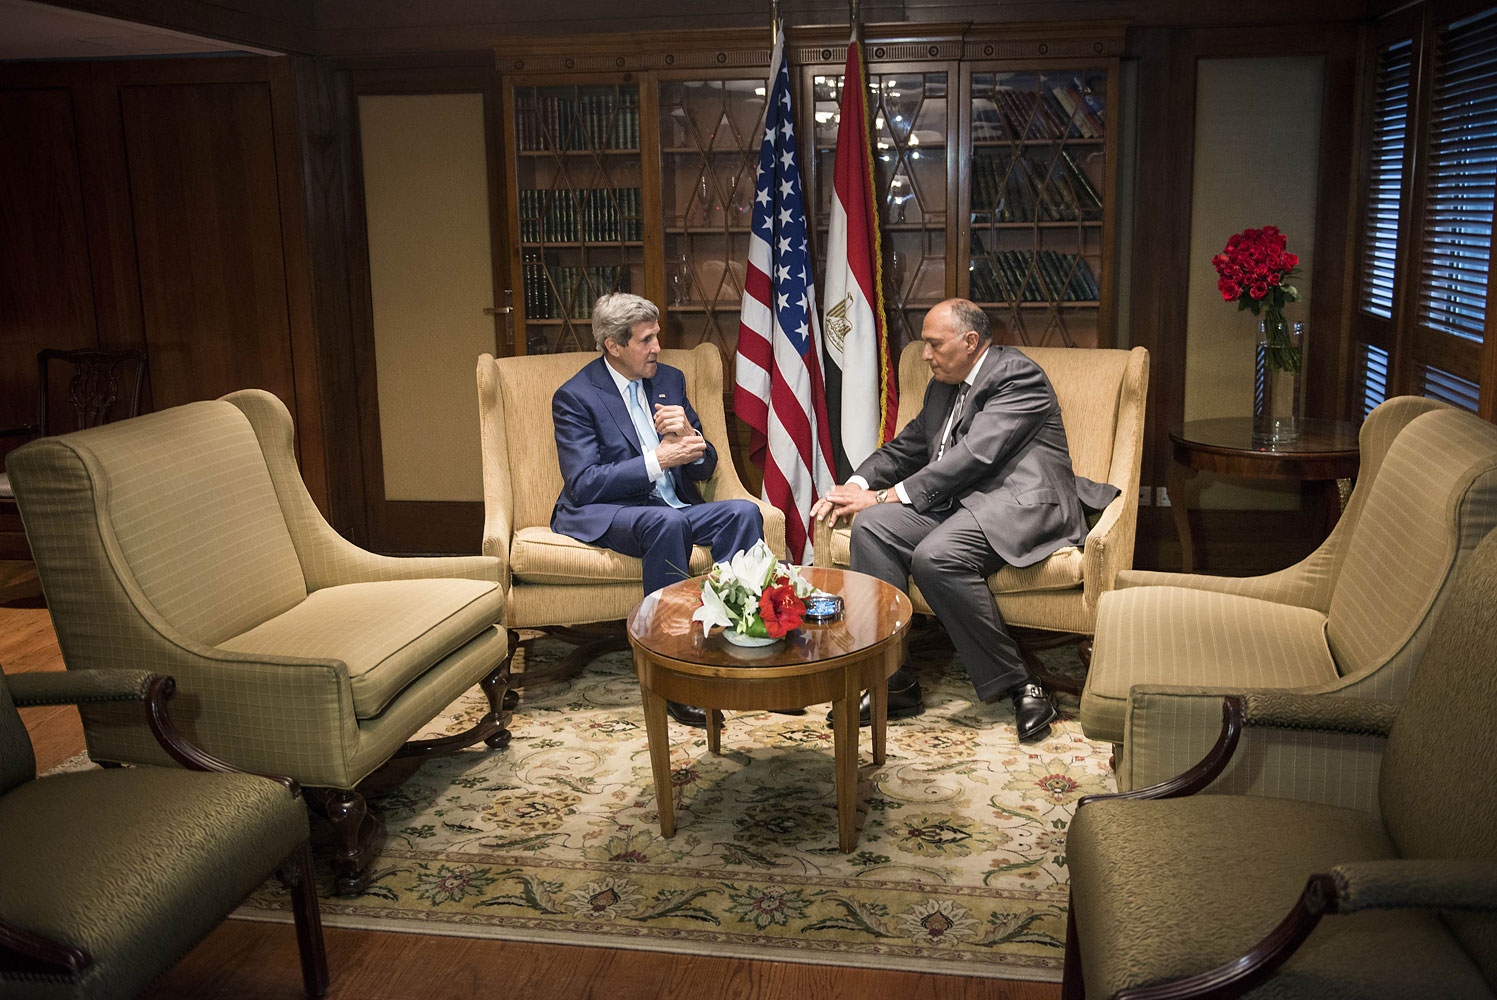 U.S. Secretary of State John Kerry, left, meets with Egyptian Foreign Minister Sameh Shukri in Cairo on June 22, 2014